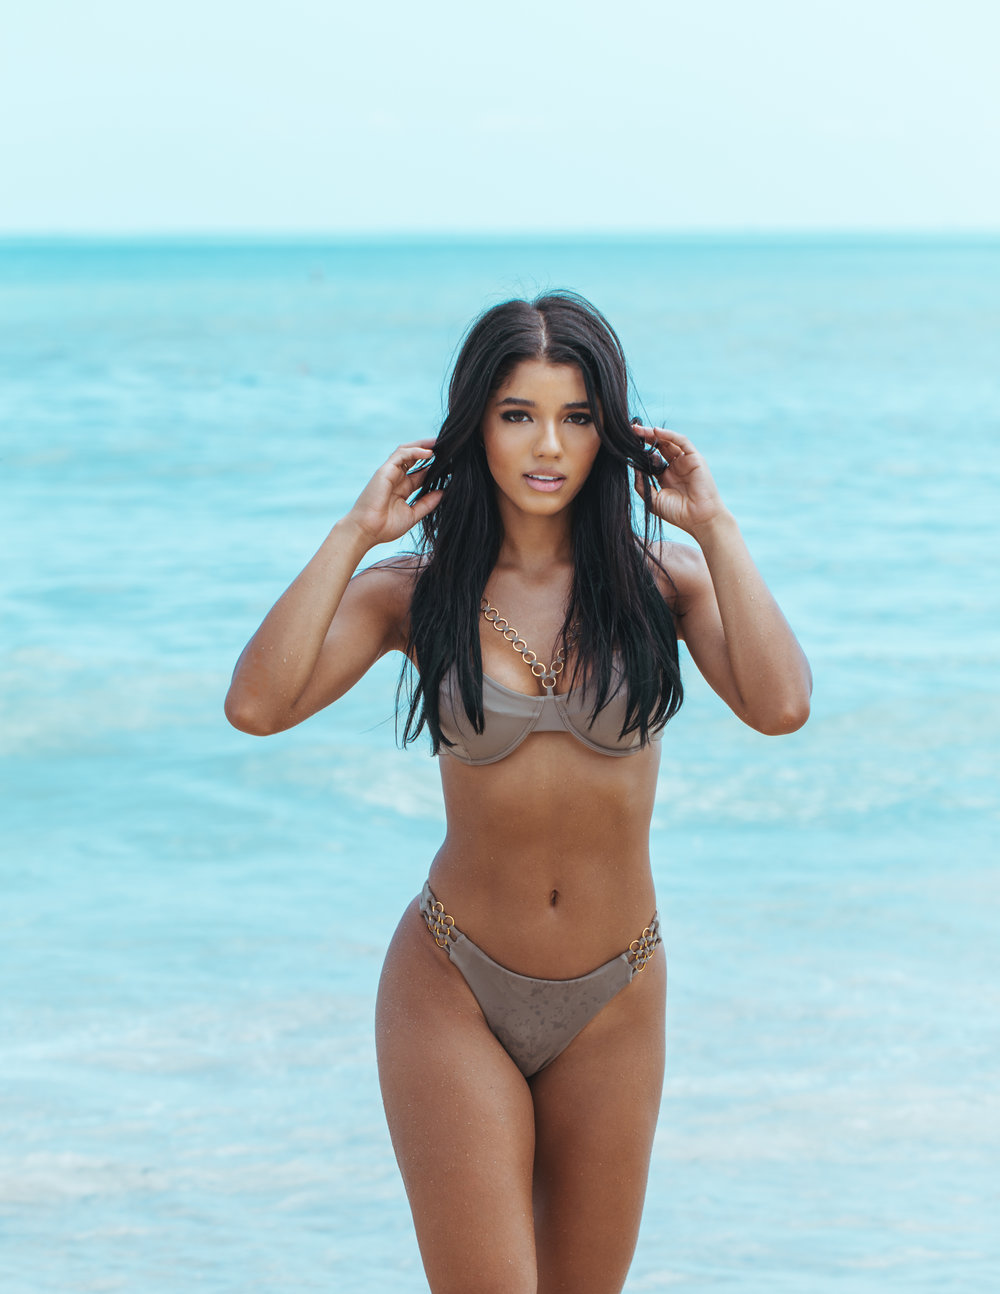 Yovanna By Richard Guaty--21.jpg